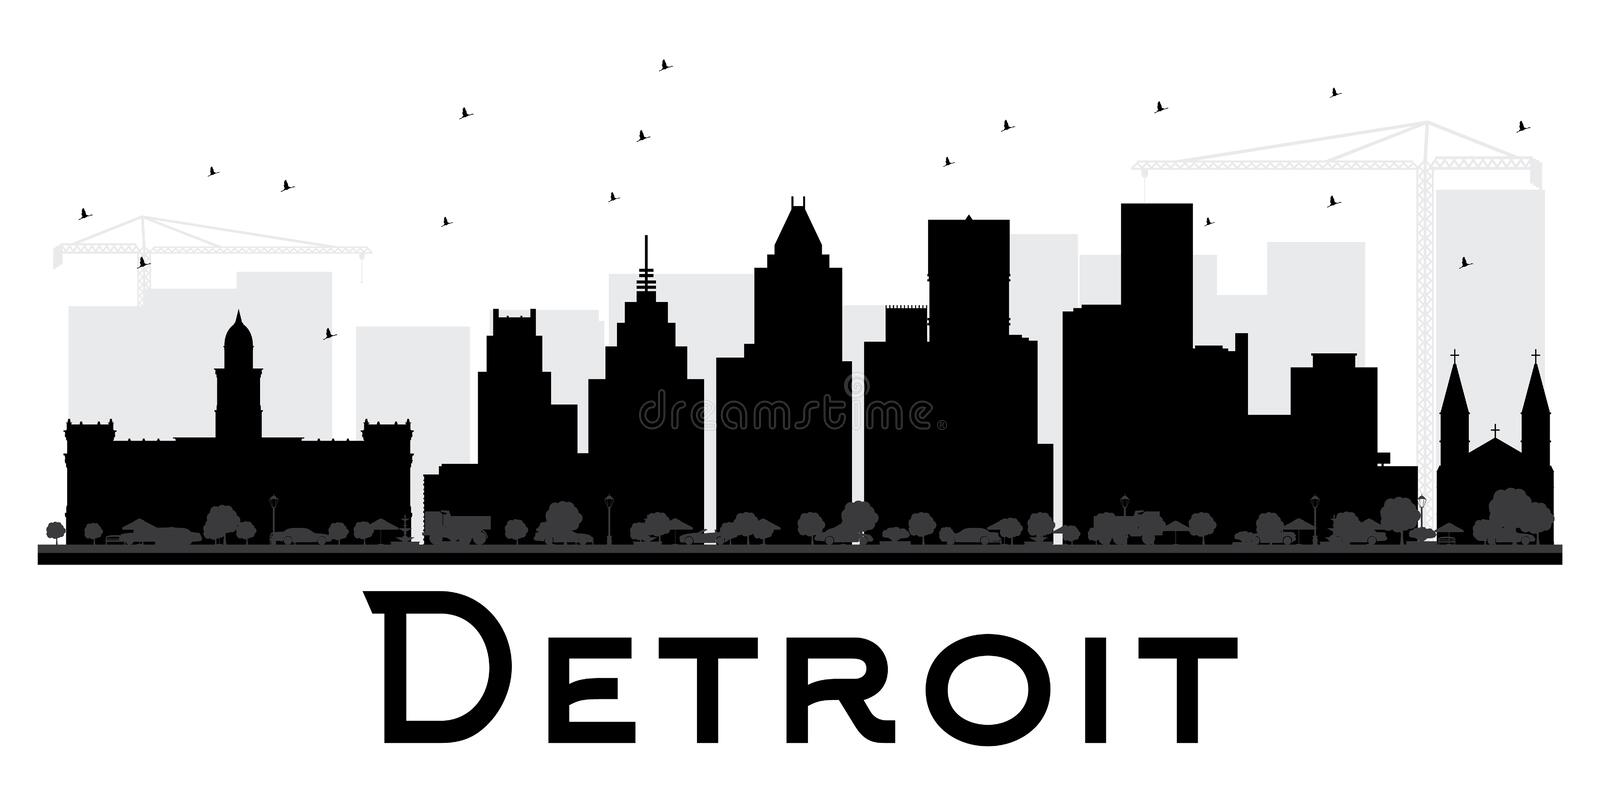 detroit city skyline black and white silhouette stock vector rh dreamstime com  detroit city skyline vector